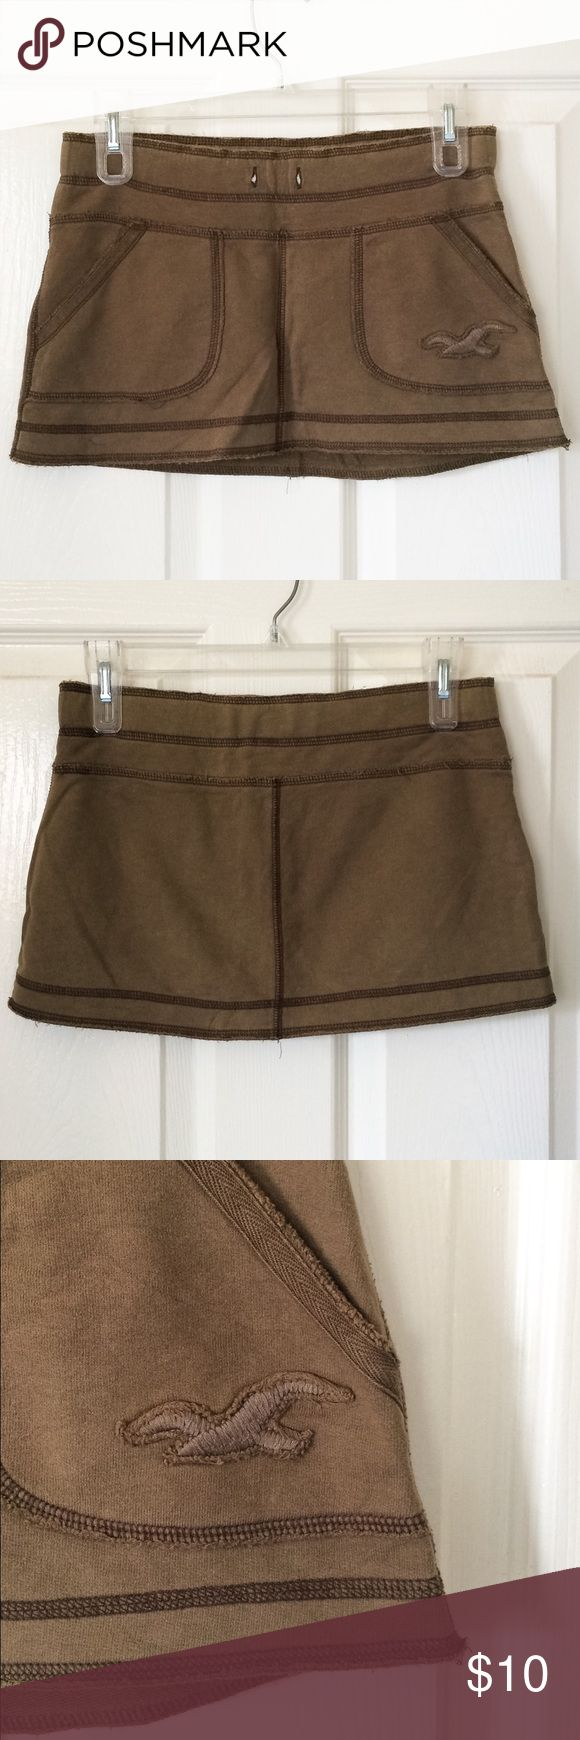 Hollister skirt Gently used but in great condition! Missing drawstring. Size XS, but will fit a S. 100% cotton. No trades! Hollister Skirts